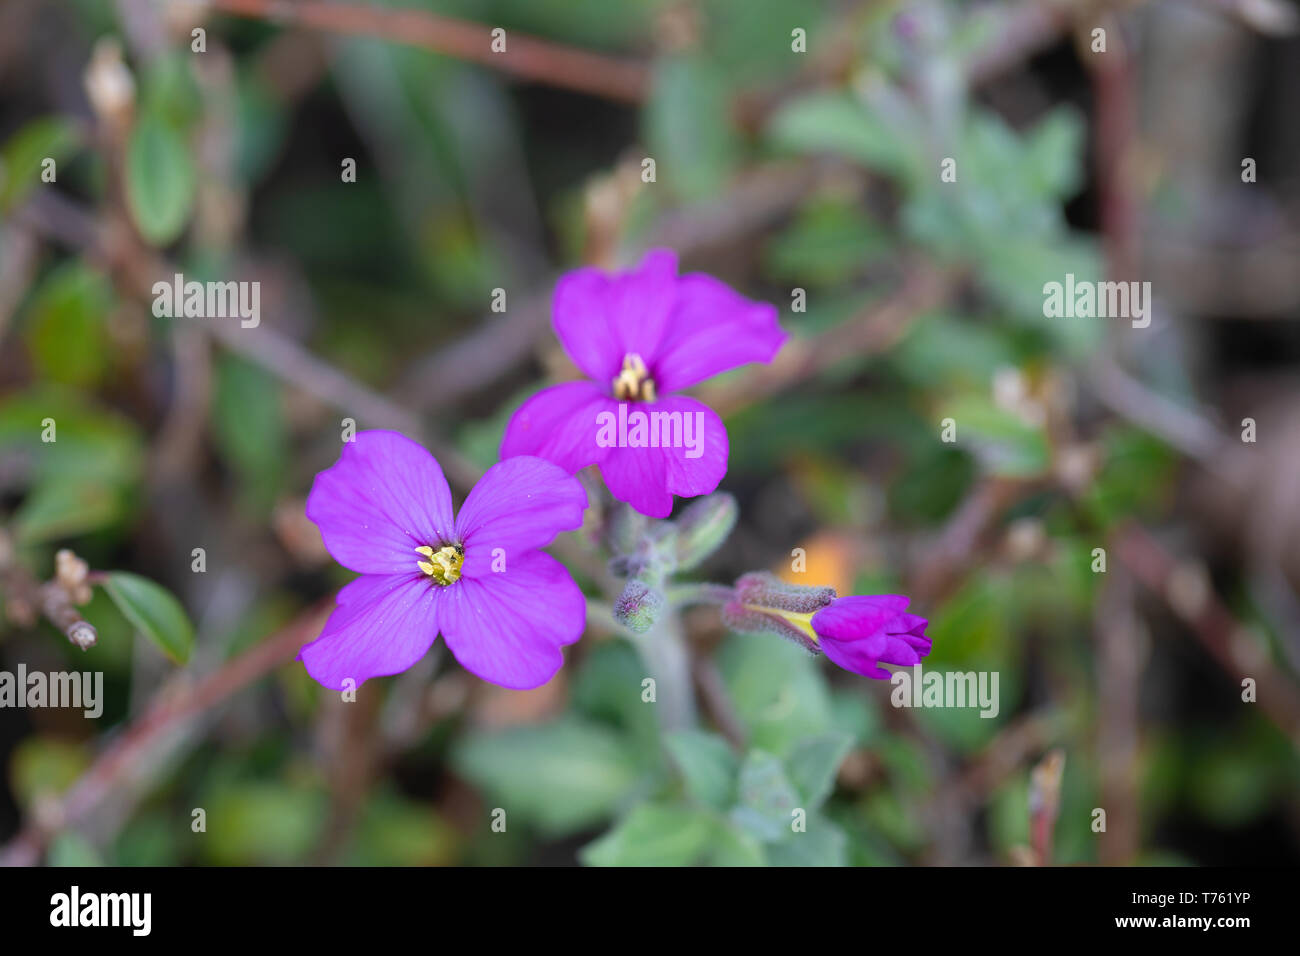 Beautiful yellow and violet field flowers with blurred background. Macro photography - Stock Image